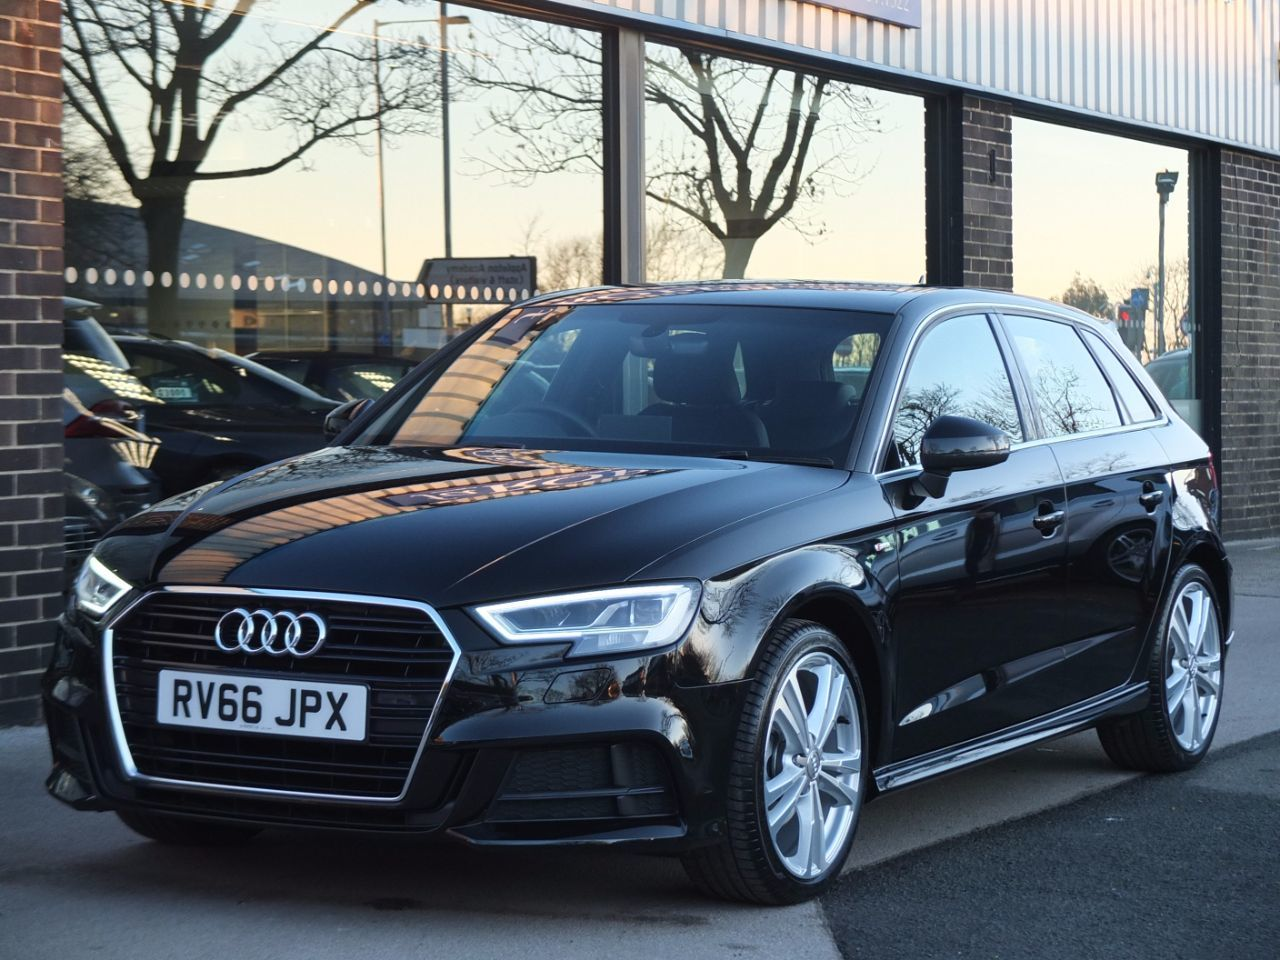 used audi a3 sportback 1 4 tfsi s line s tronic 150ps cylinder on demand for sale in bradford. Black Bedroom Furniture Sets. Home Design Ideas